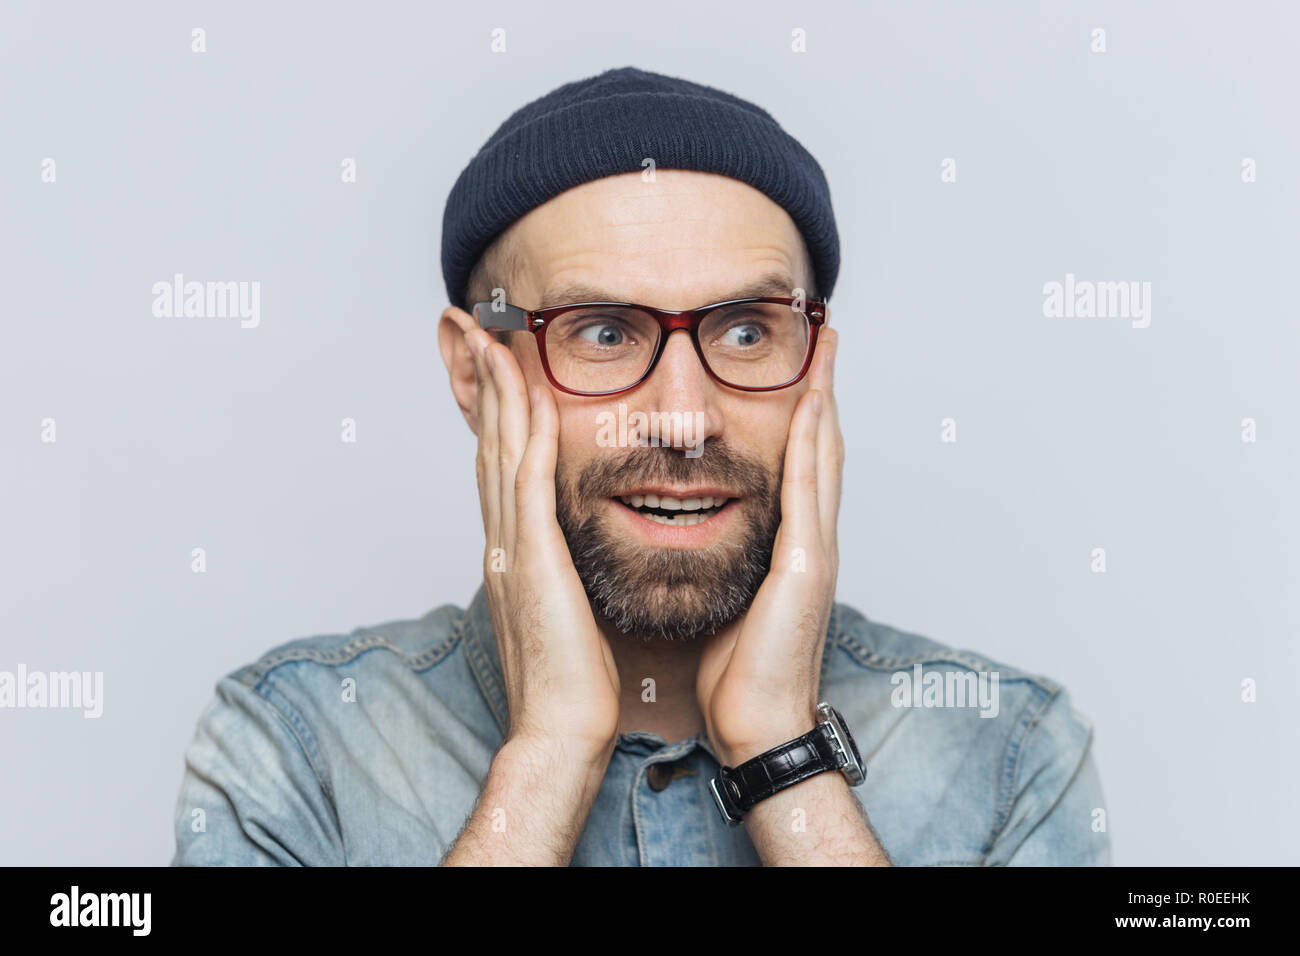 Amazed handsome middle aged man looks into distance in bewilderment, keeps hands on cheeks, wears glasses and hat, isolated over white background. Peo - Stock Image